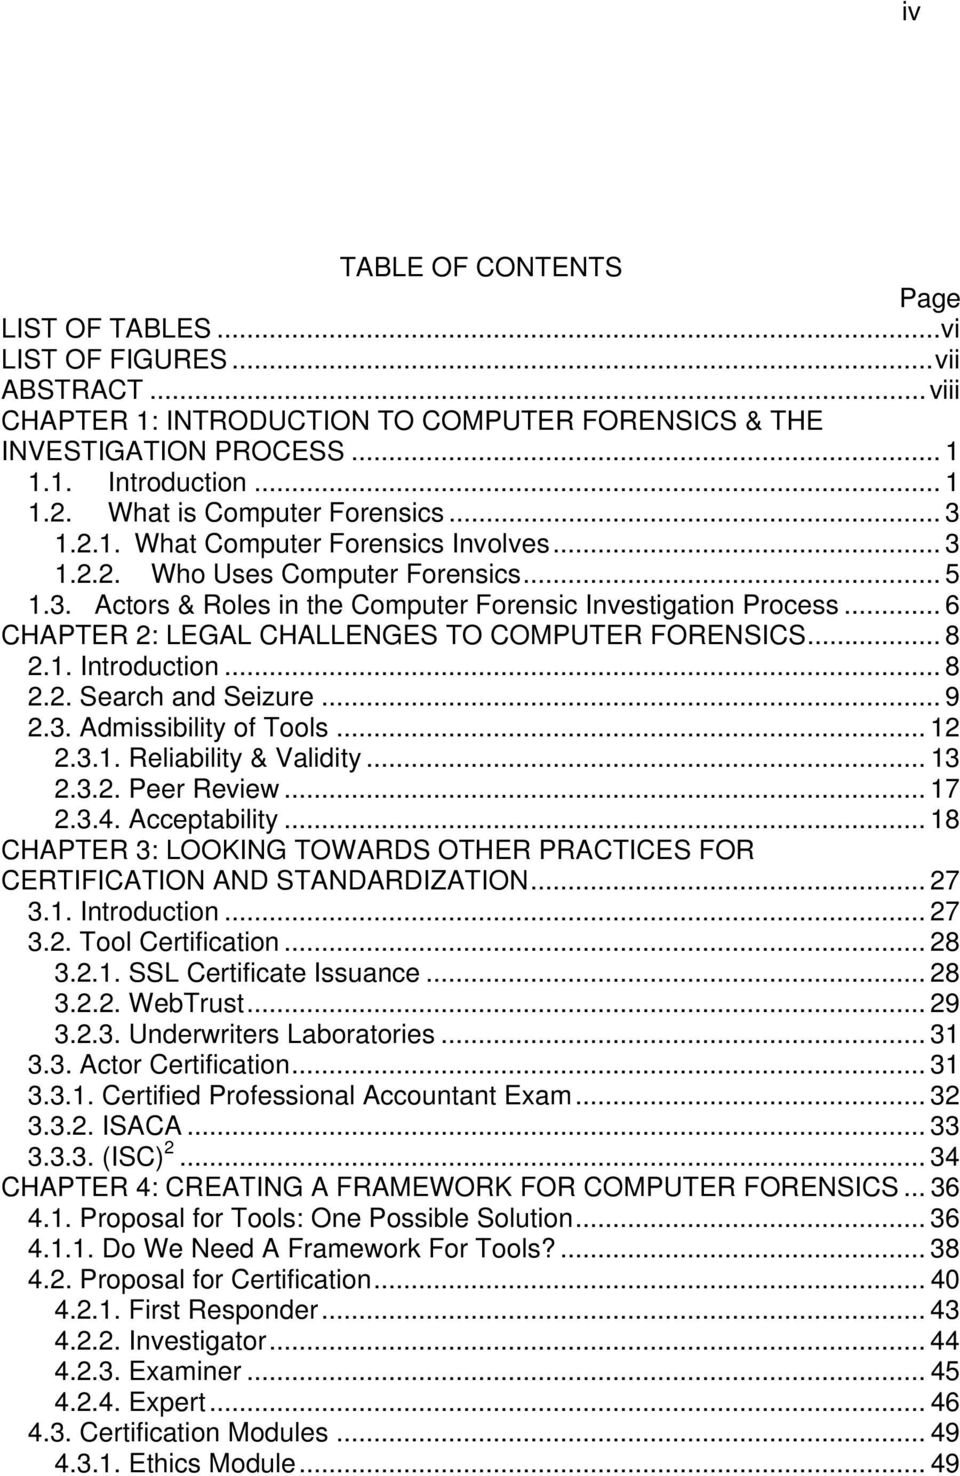 .. 6 CHAPTER 2: LEGAL CHALLENGES TO COMPUTER FORENSICS... 8 2.1. Introduction... 8 2.2. Search and Seizure... 9 2.3. Admissibility of Tools... 12 2.3.1. Reliability & Validity... 13 2.3.2. Peer Review.